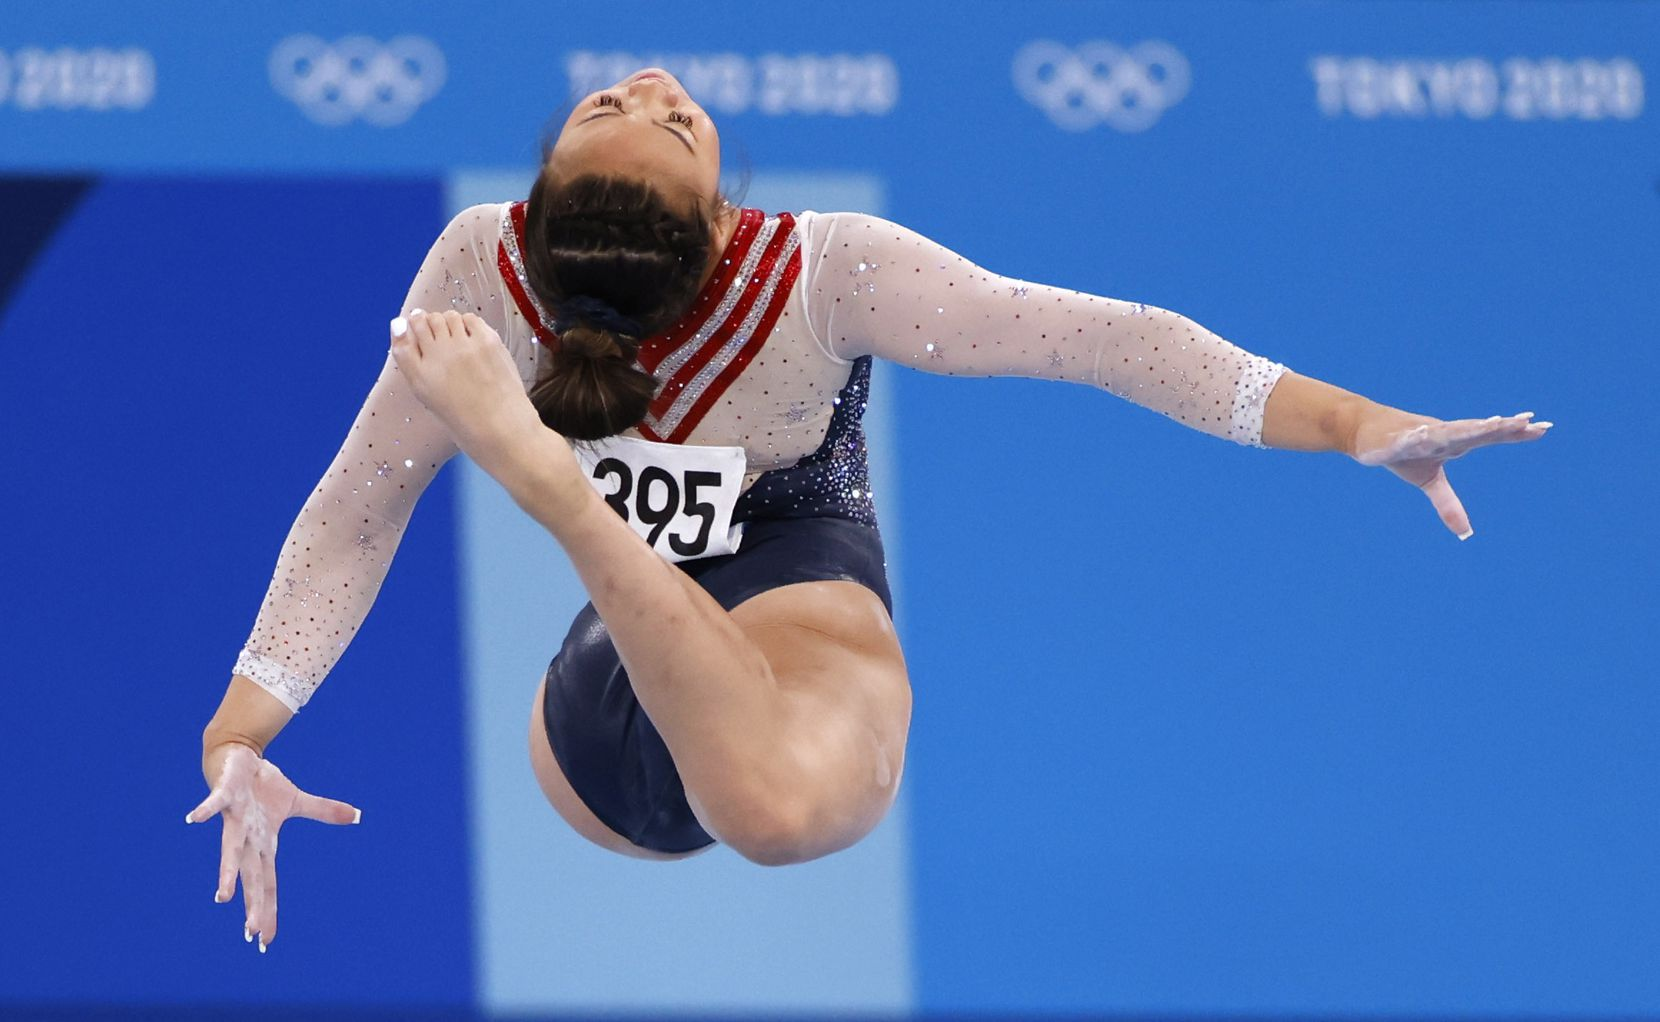 USA's Sunisa Lee competes on the balance beam during the women's all-around final at the postponed 2020 Tokyo Olympics at Ariake Gymnastics Centre, on Thursday, July 29, 2021, in Tokyo, Japan. (Vernon Bryant/The Dallas Morning News)